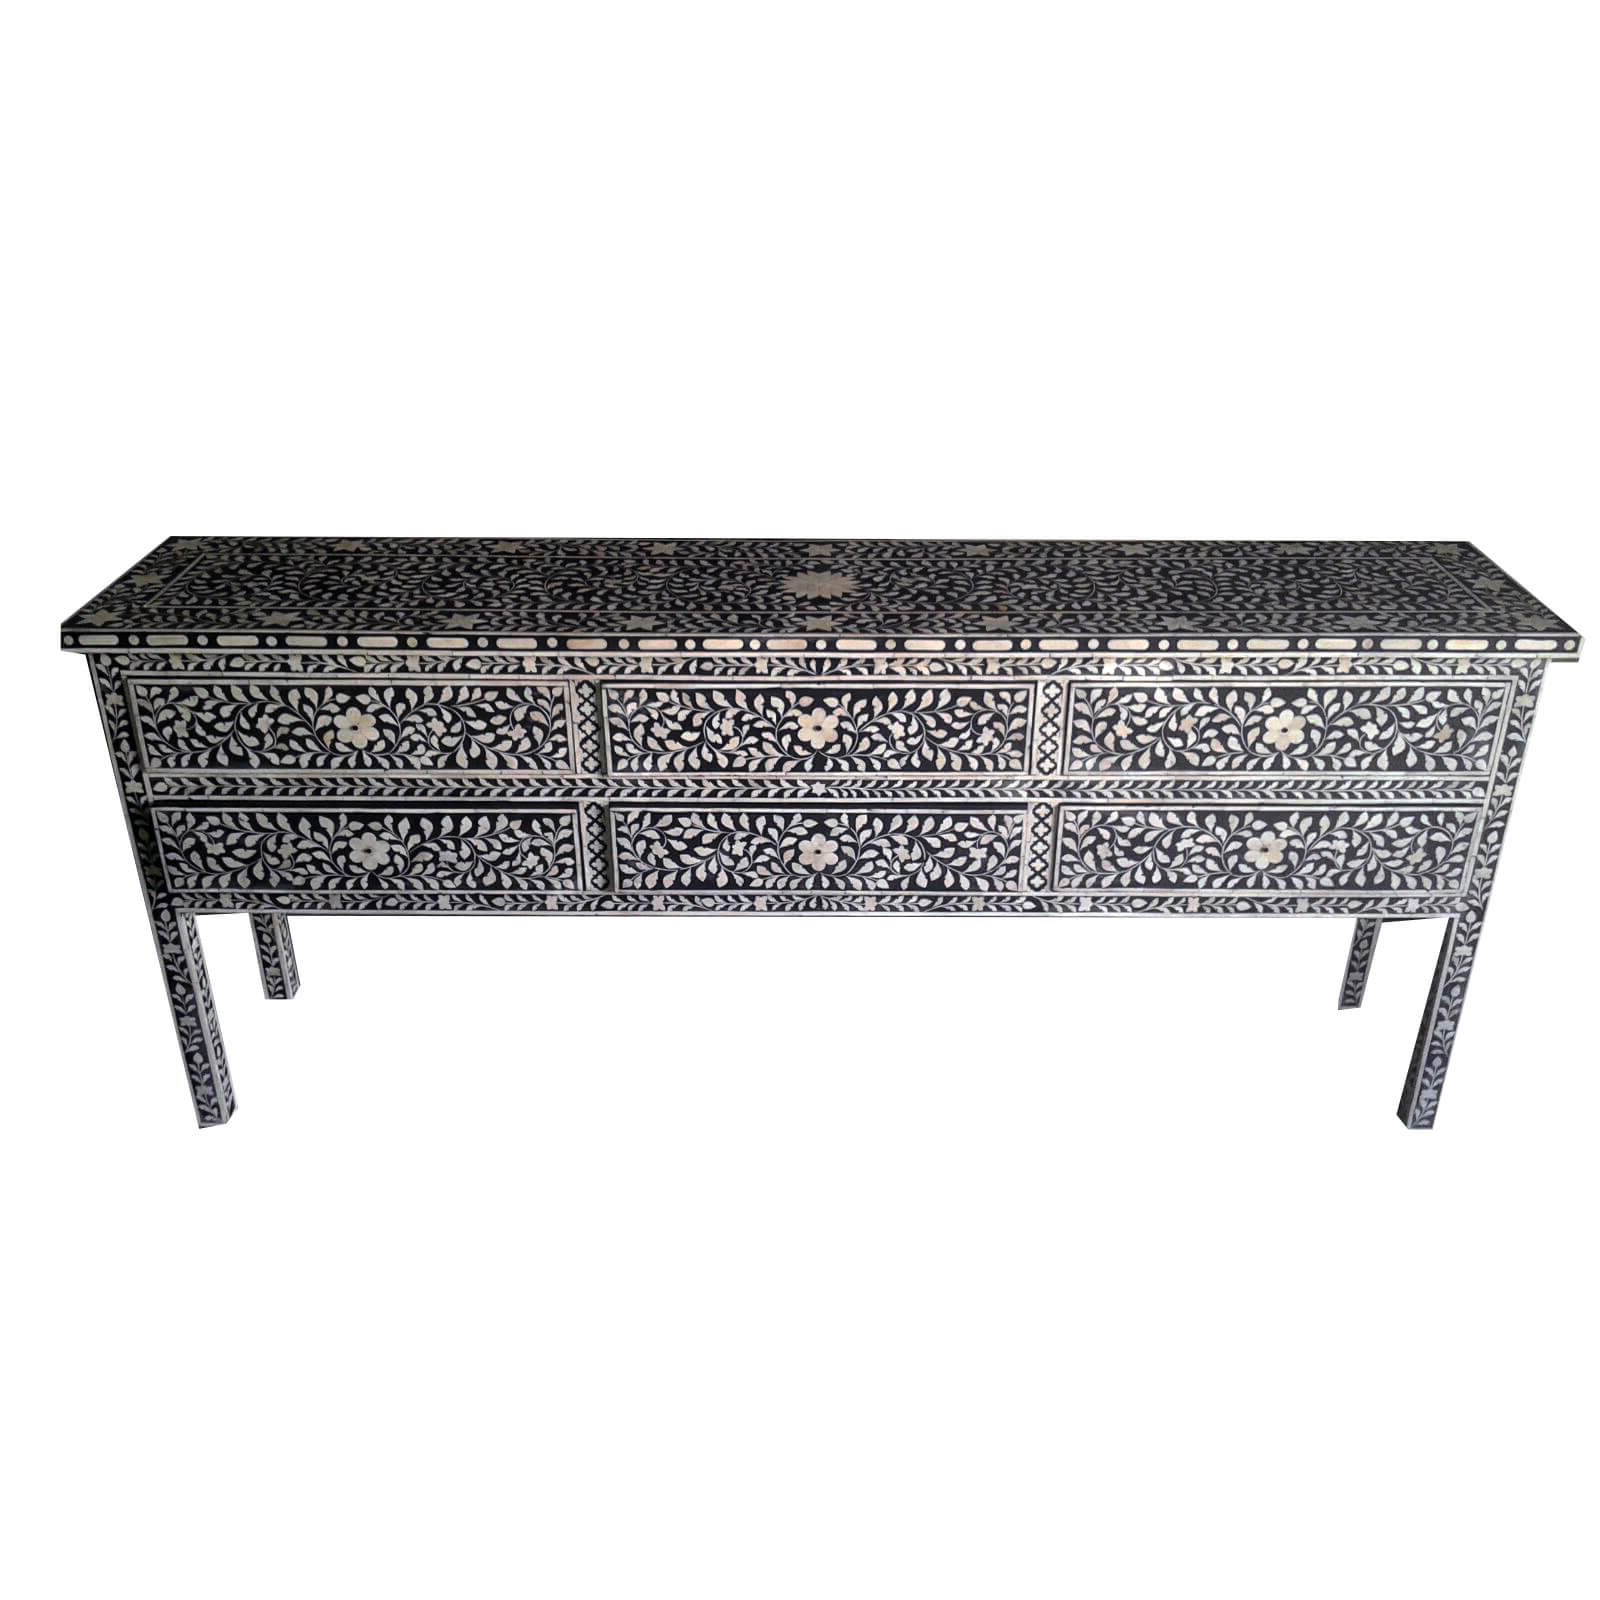 Indian Bone Inlay Furniture For Sale | Iris Furnishing Ltd Regarding Black And White Inlay Console Tables (View 15 of 20)